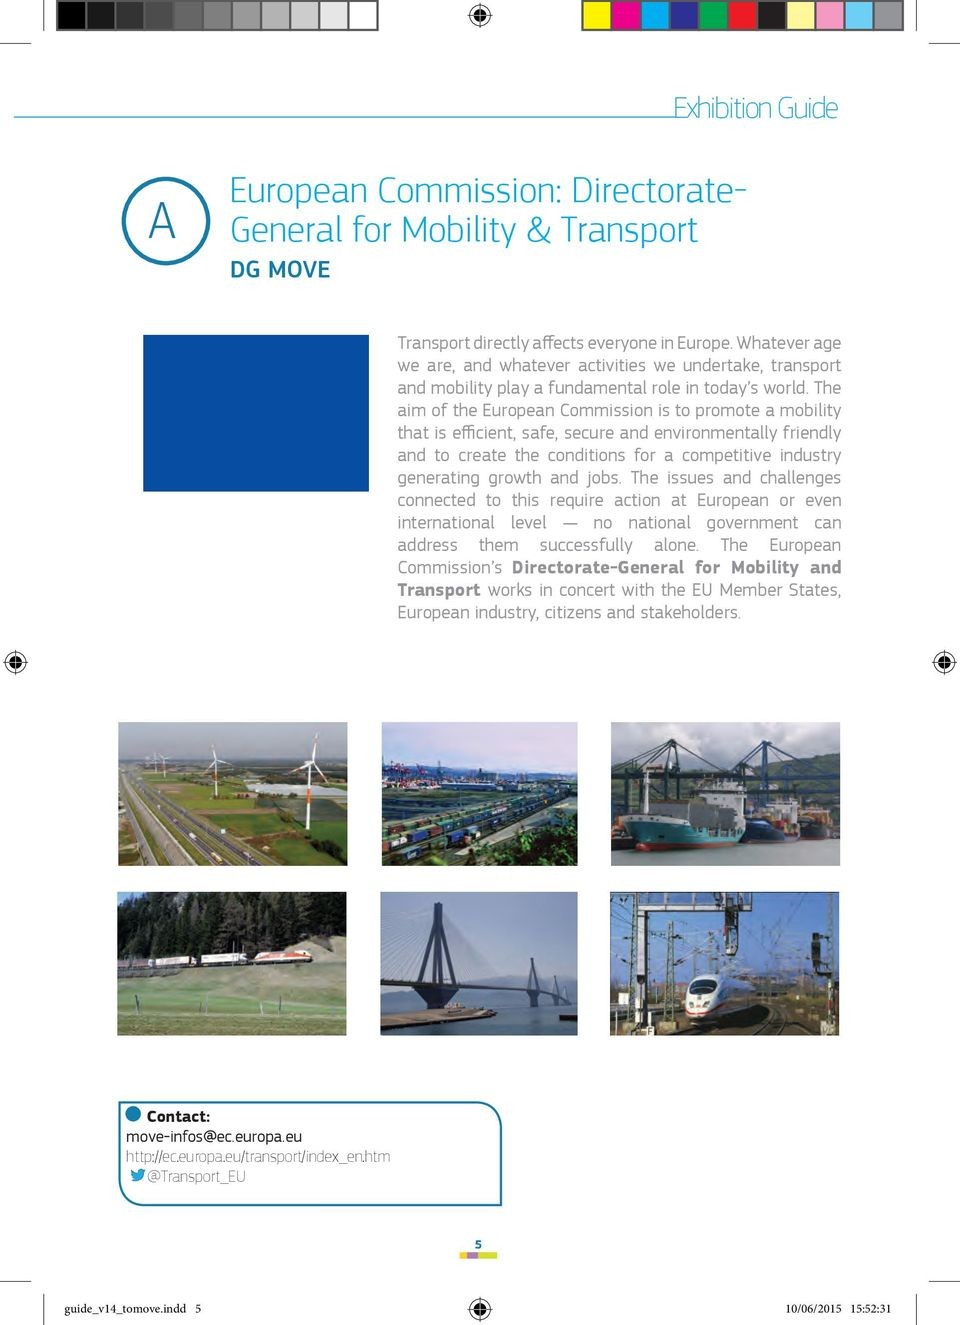 The aim of the European Commission is to promote a mobility that is efficient, safe, secure and environmentally friendly and to create the conditions for a competitive industry generating growth and